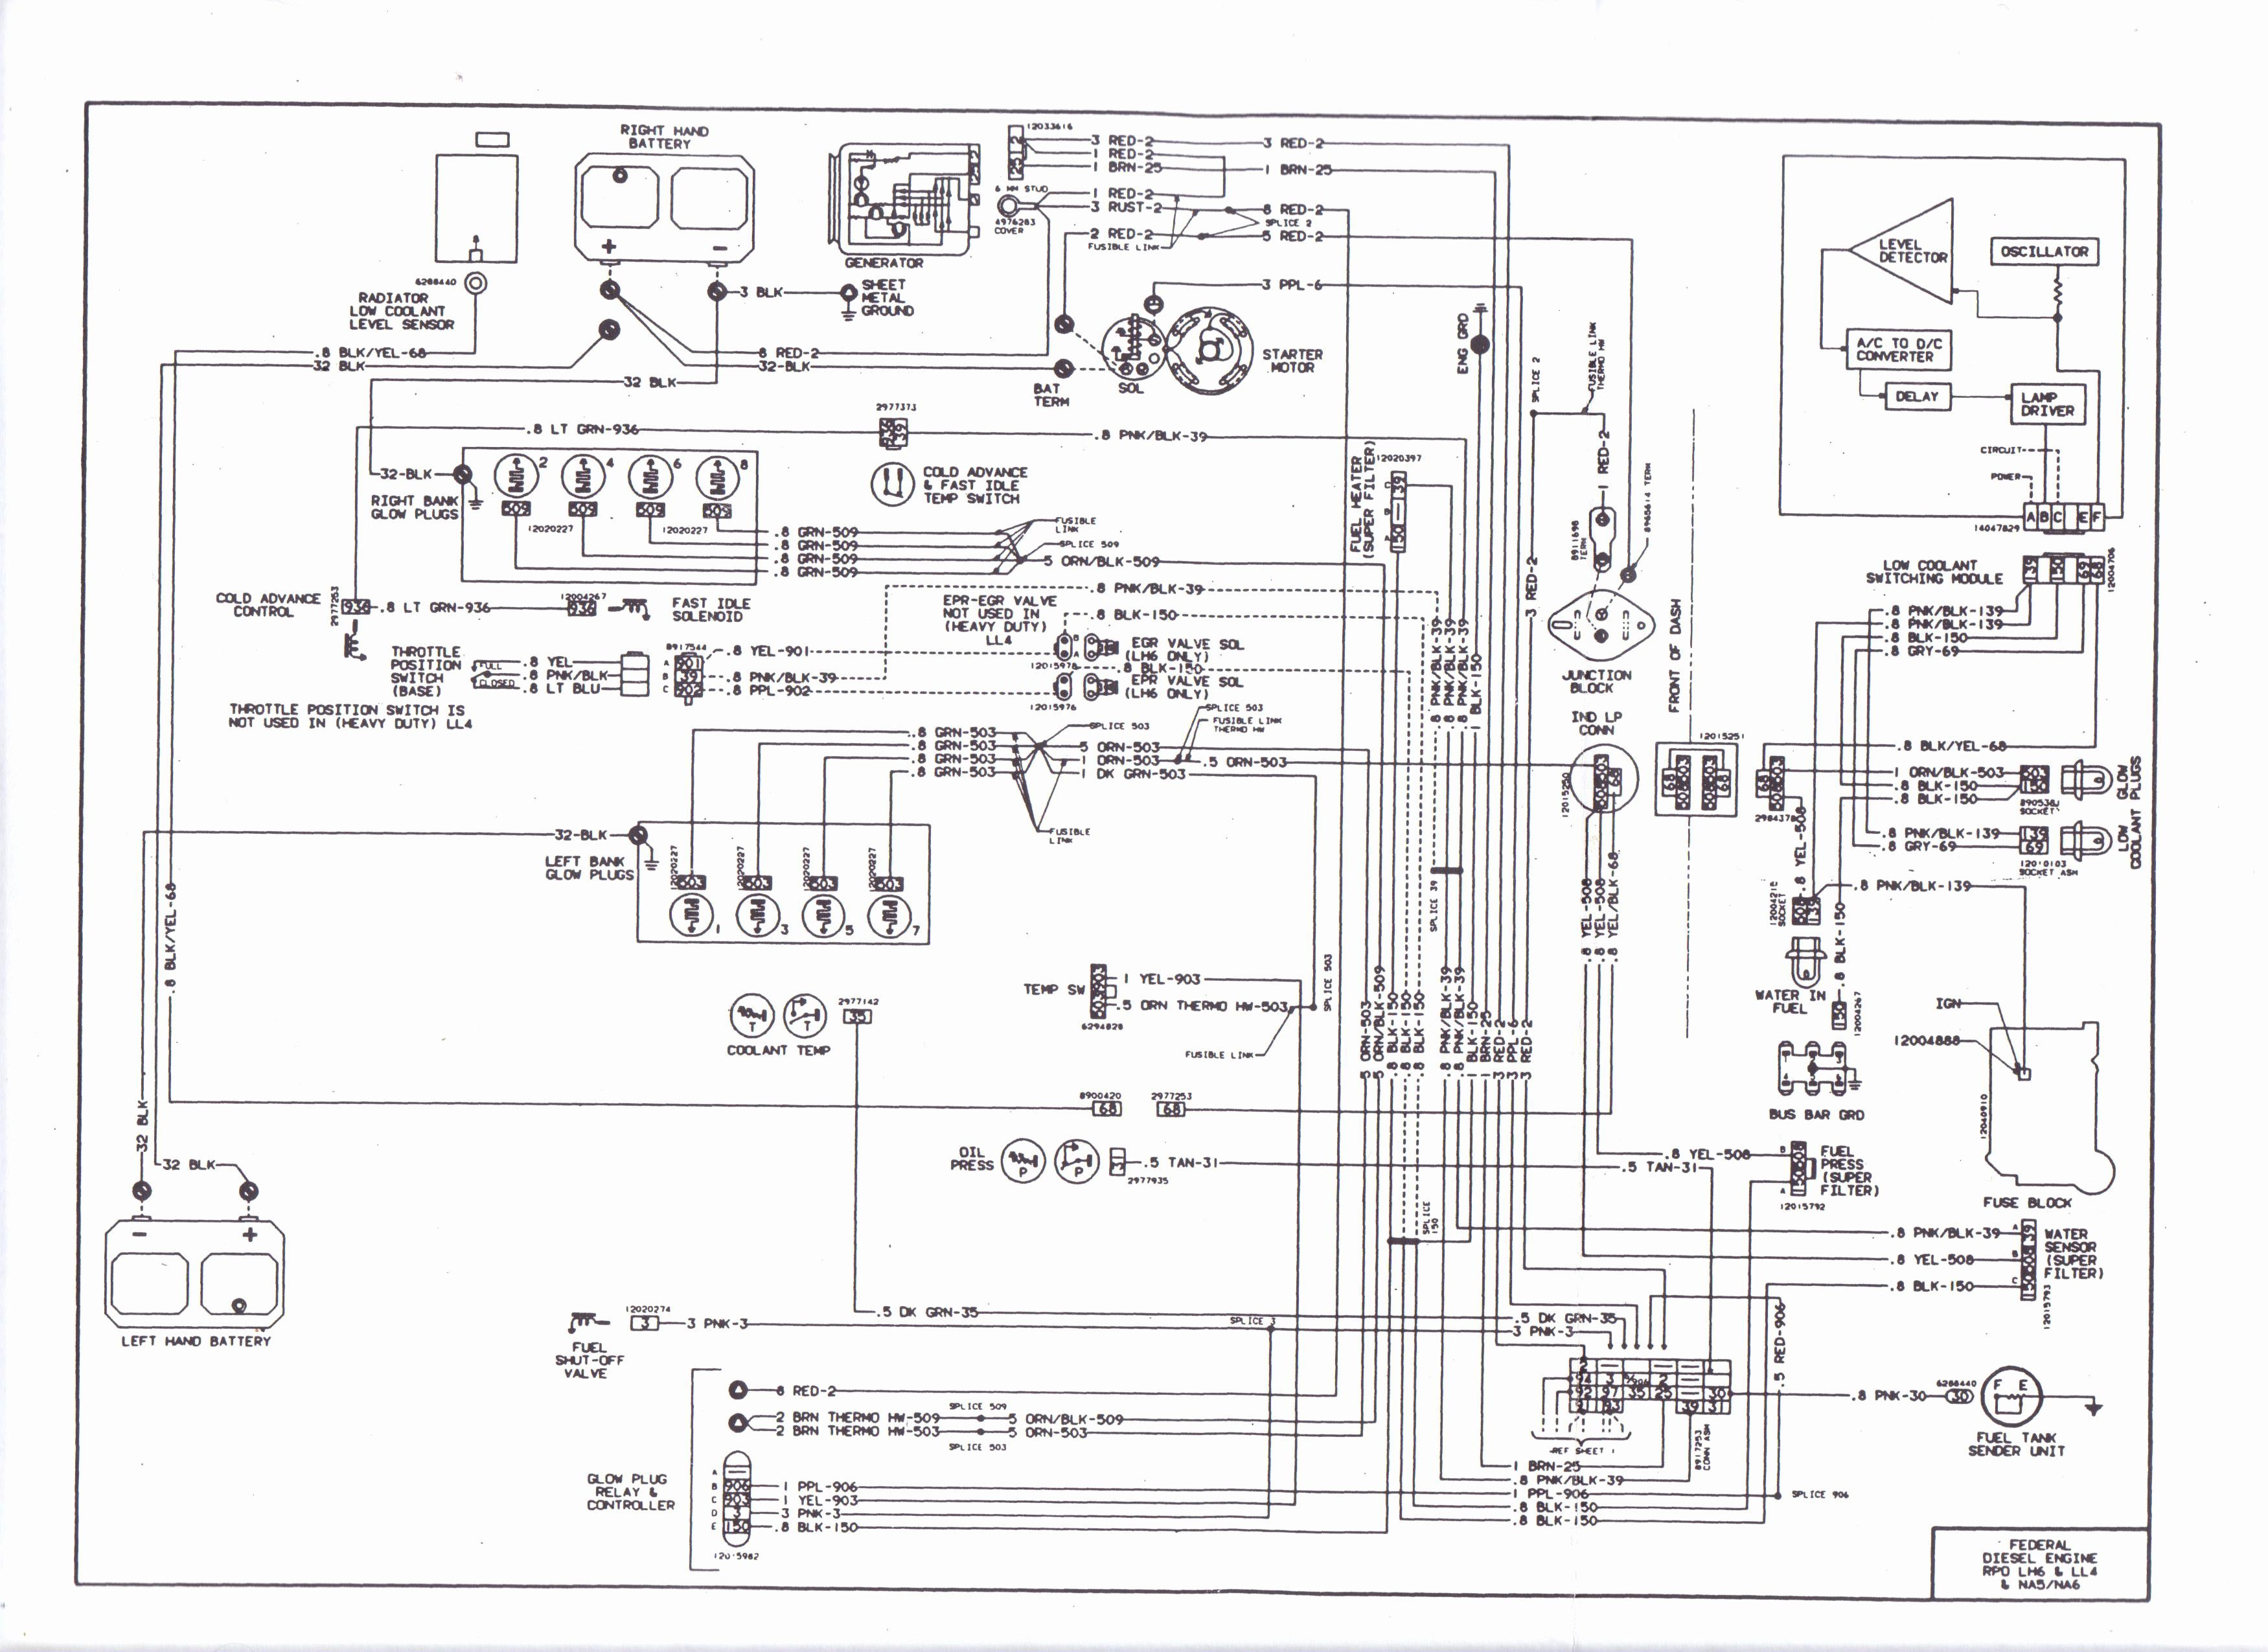 A Wiring Diagram Is A Type Of Schematic That Uses Abstract Pictorial Symbols To Show All The Interconnect Electrical Wiring Diagram Diagram Electrical Problems